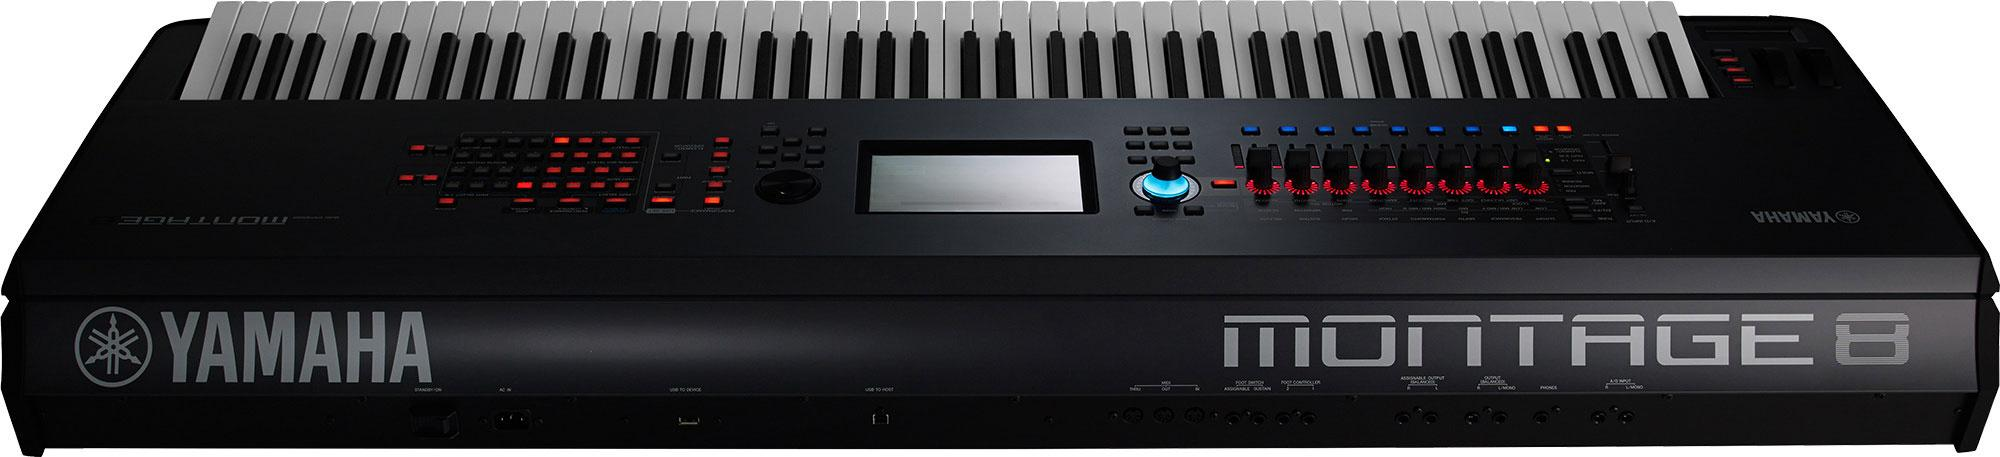 Amazon.com: Yamaha Montage8 Synthesizer Workstation: Musical ...